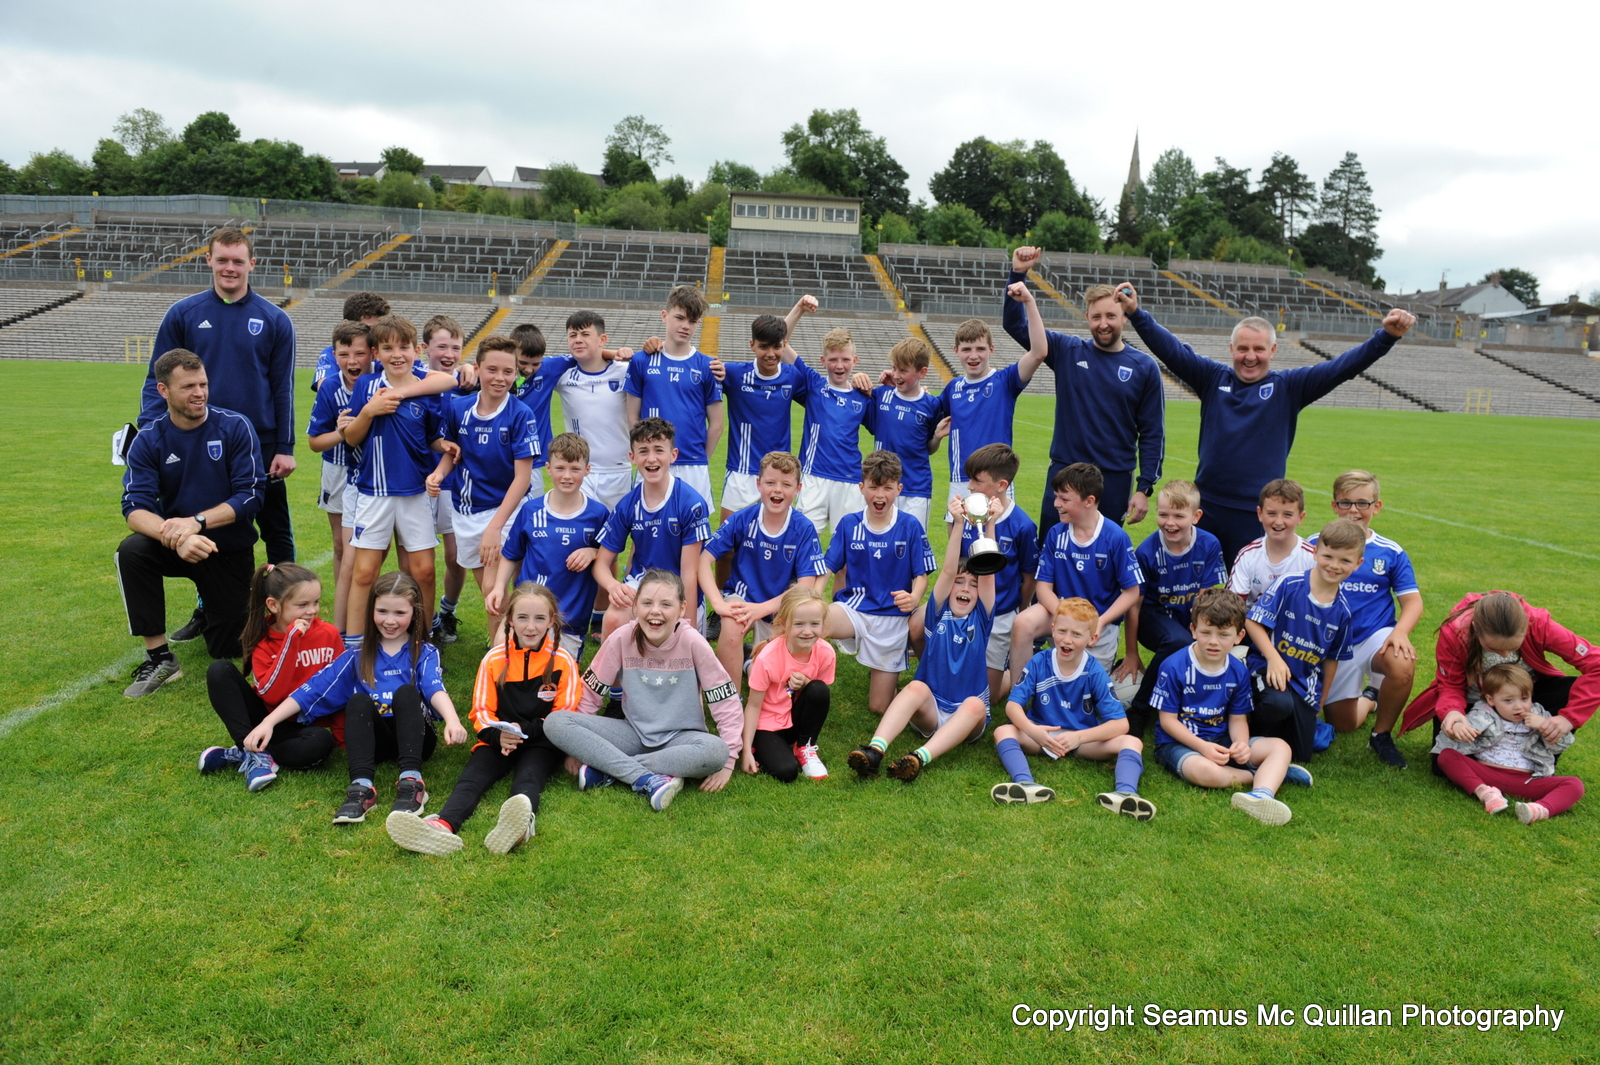 Monaghan's Holy Trinity Gives Scotstown U13  Division 1 Shield